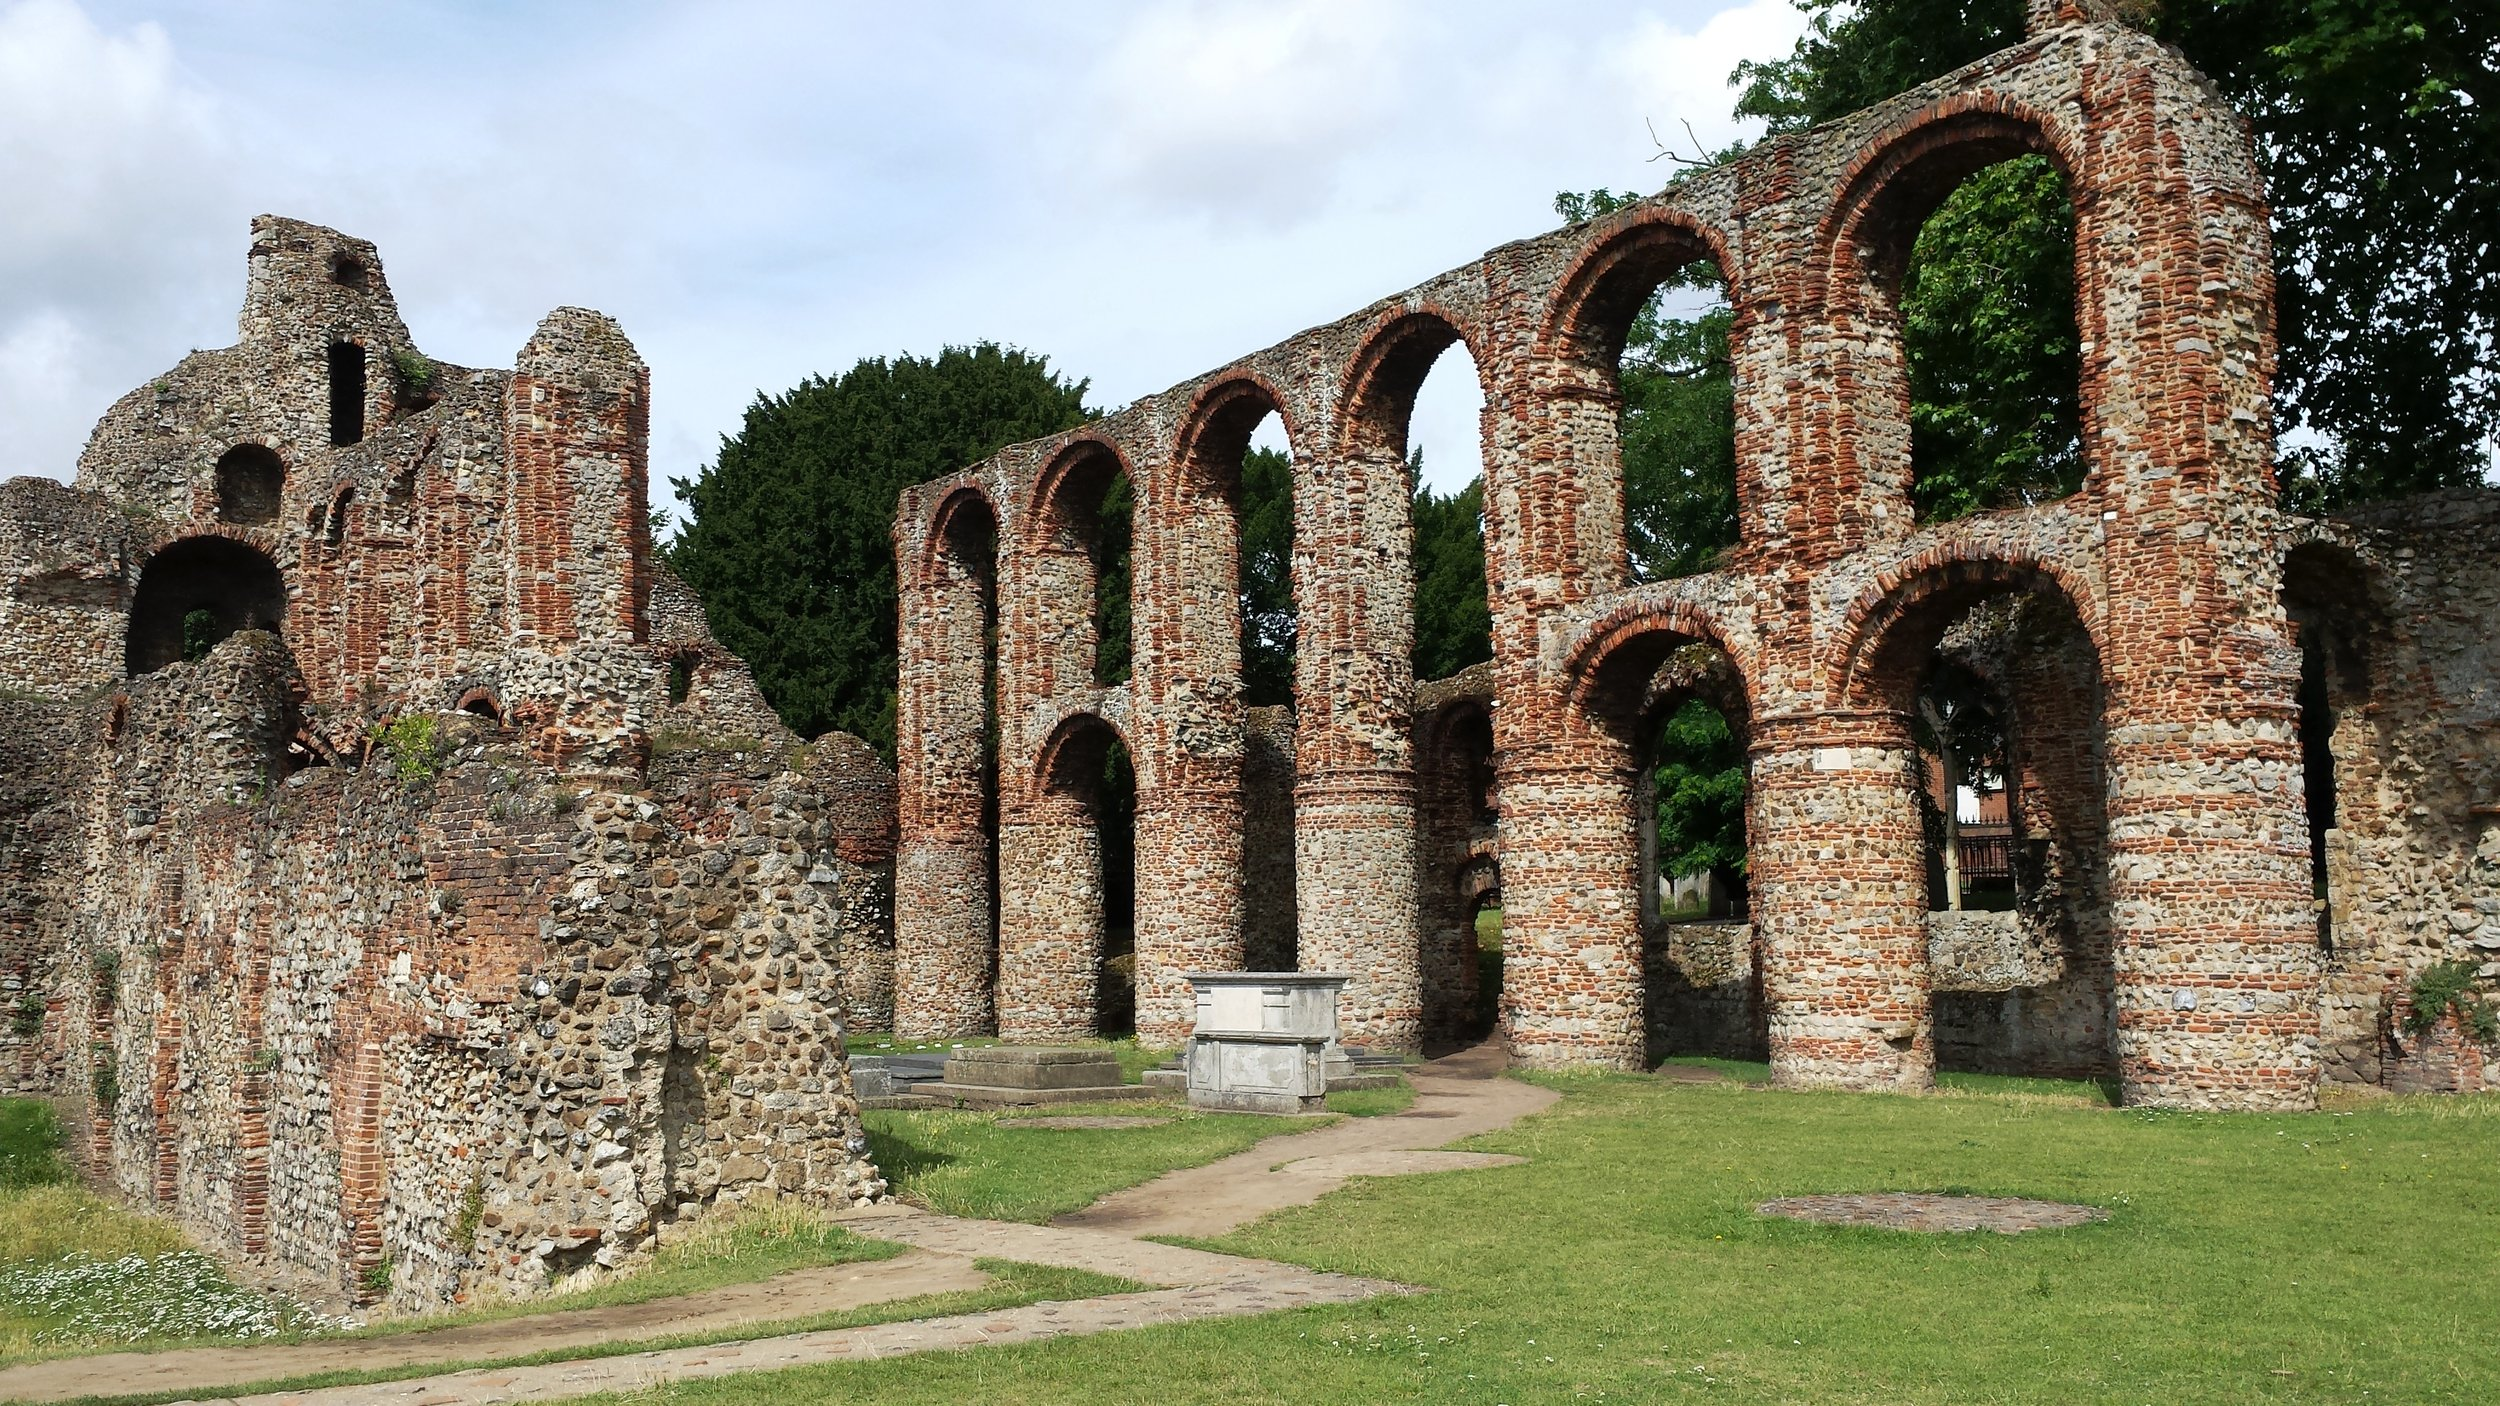 St. Boltophs Priory in Colchester